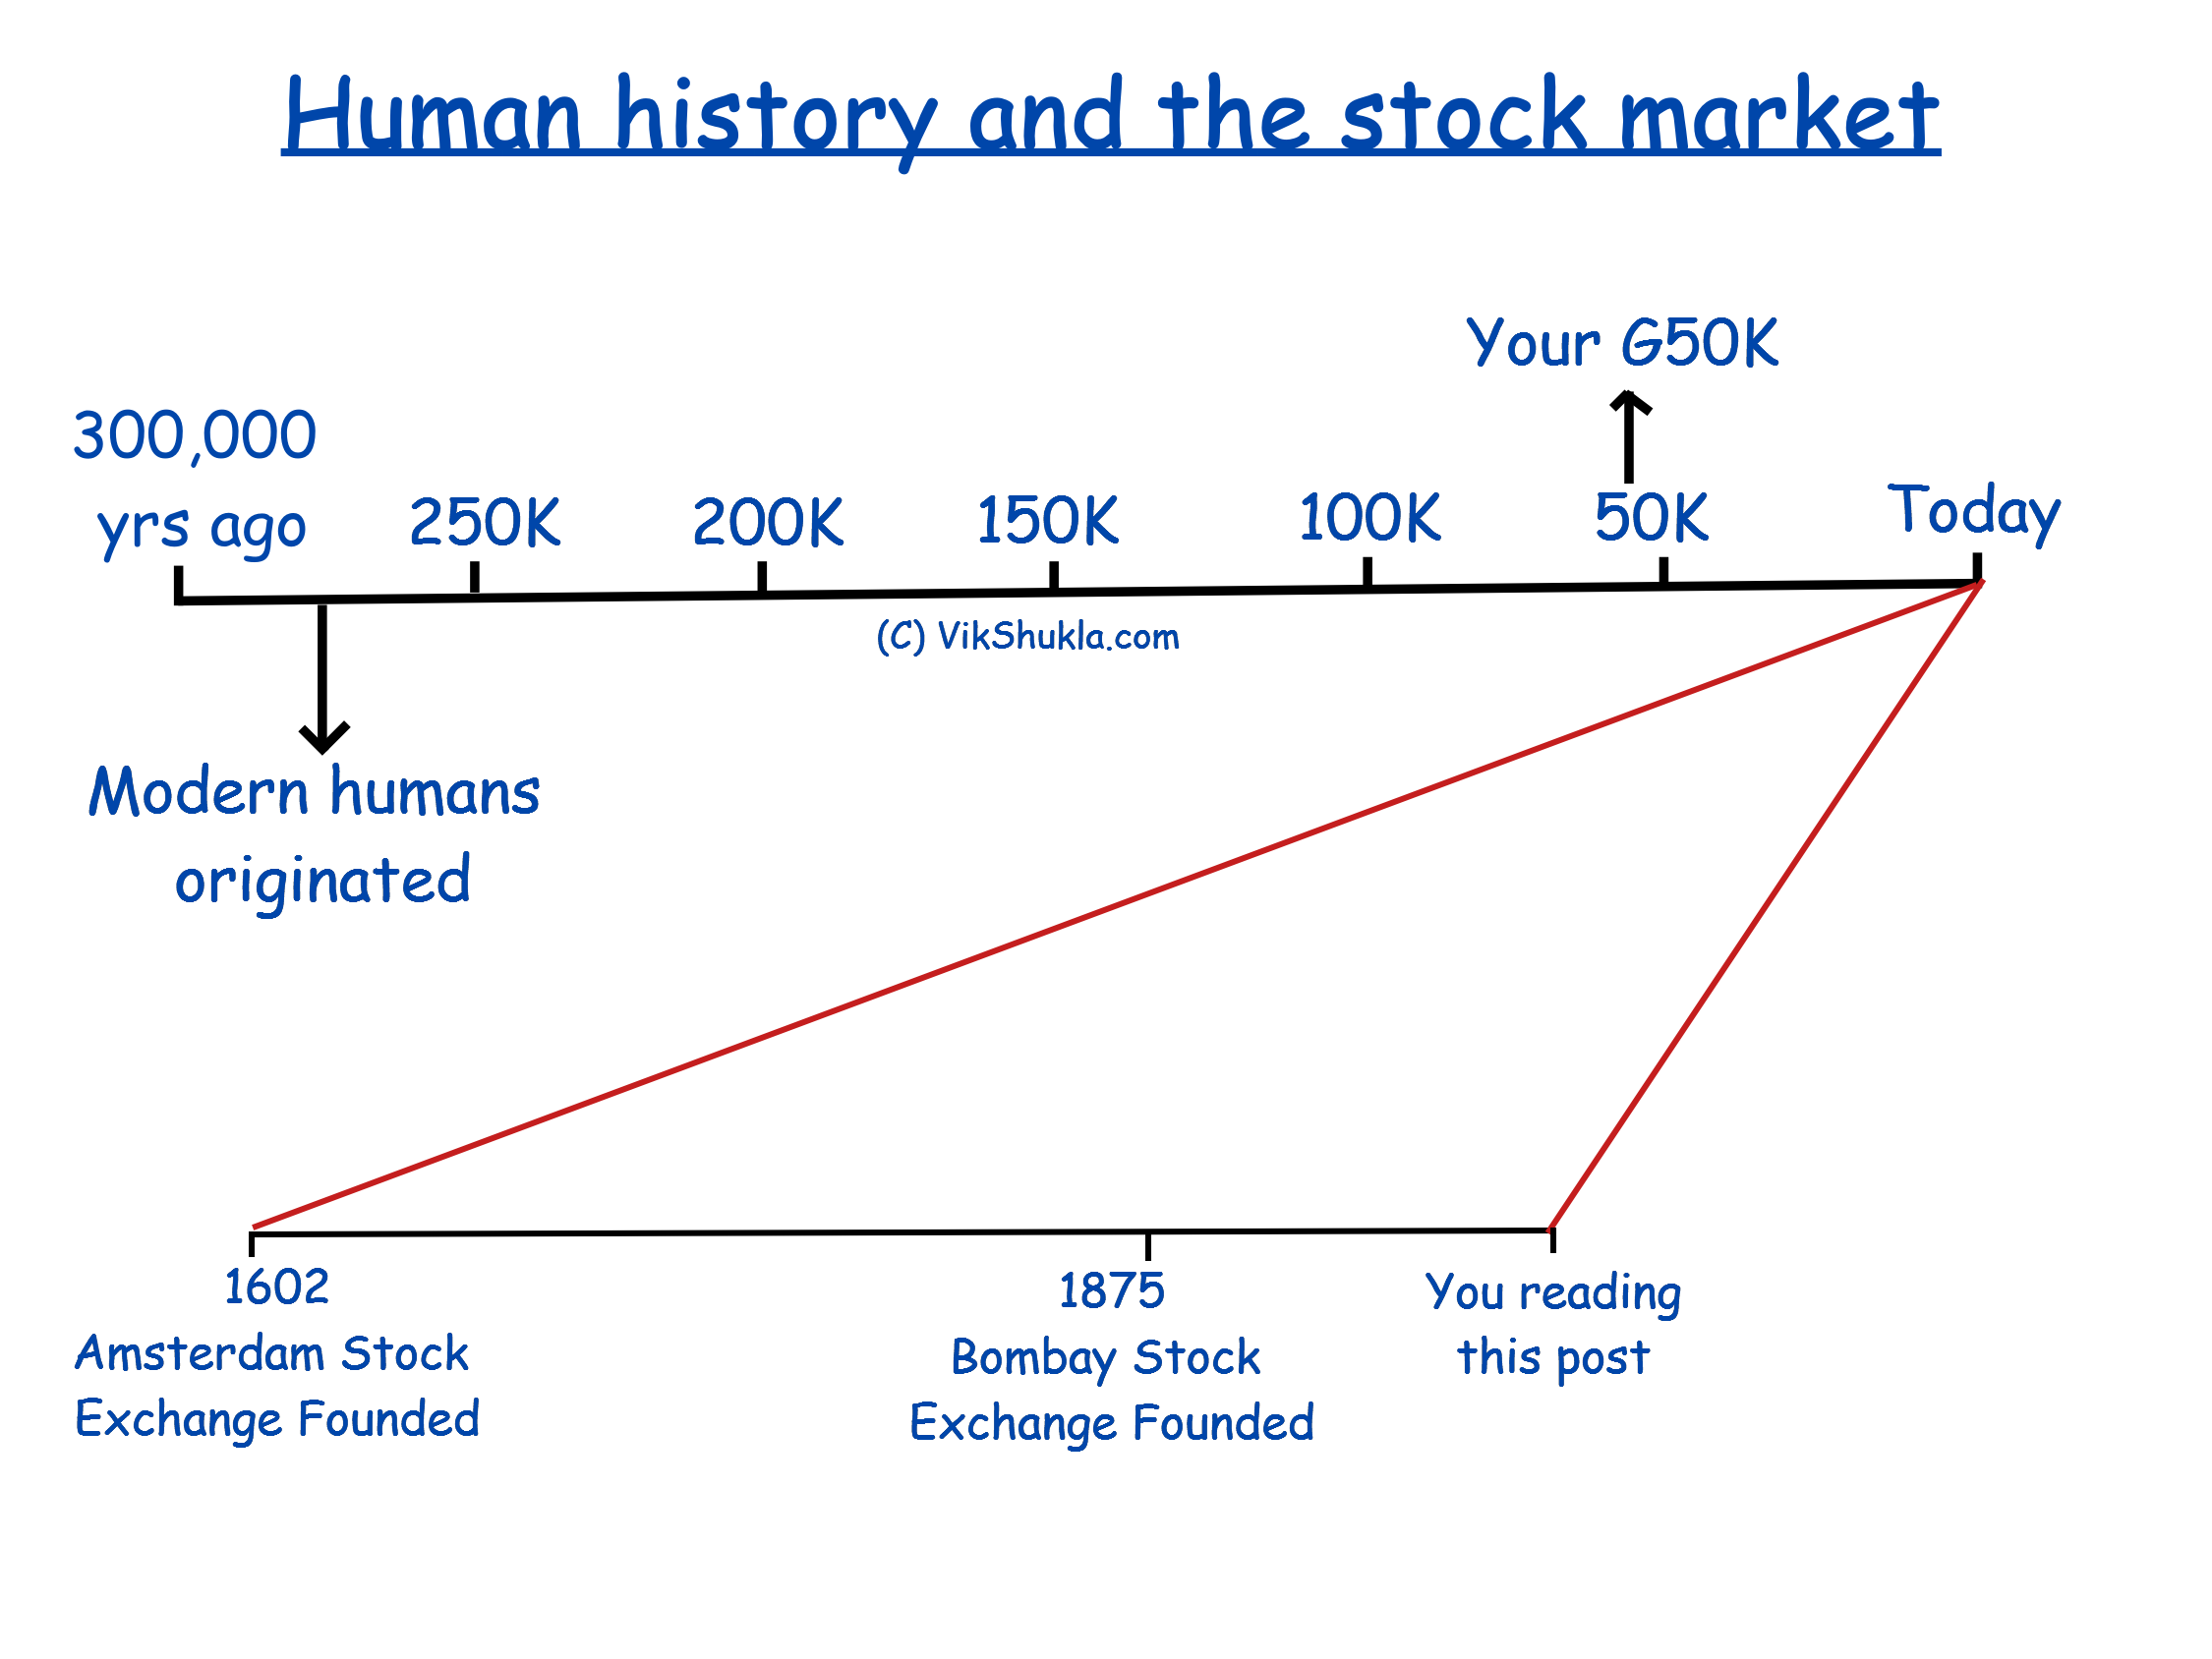 Human history and the stock market. Image by VikShukla.com